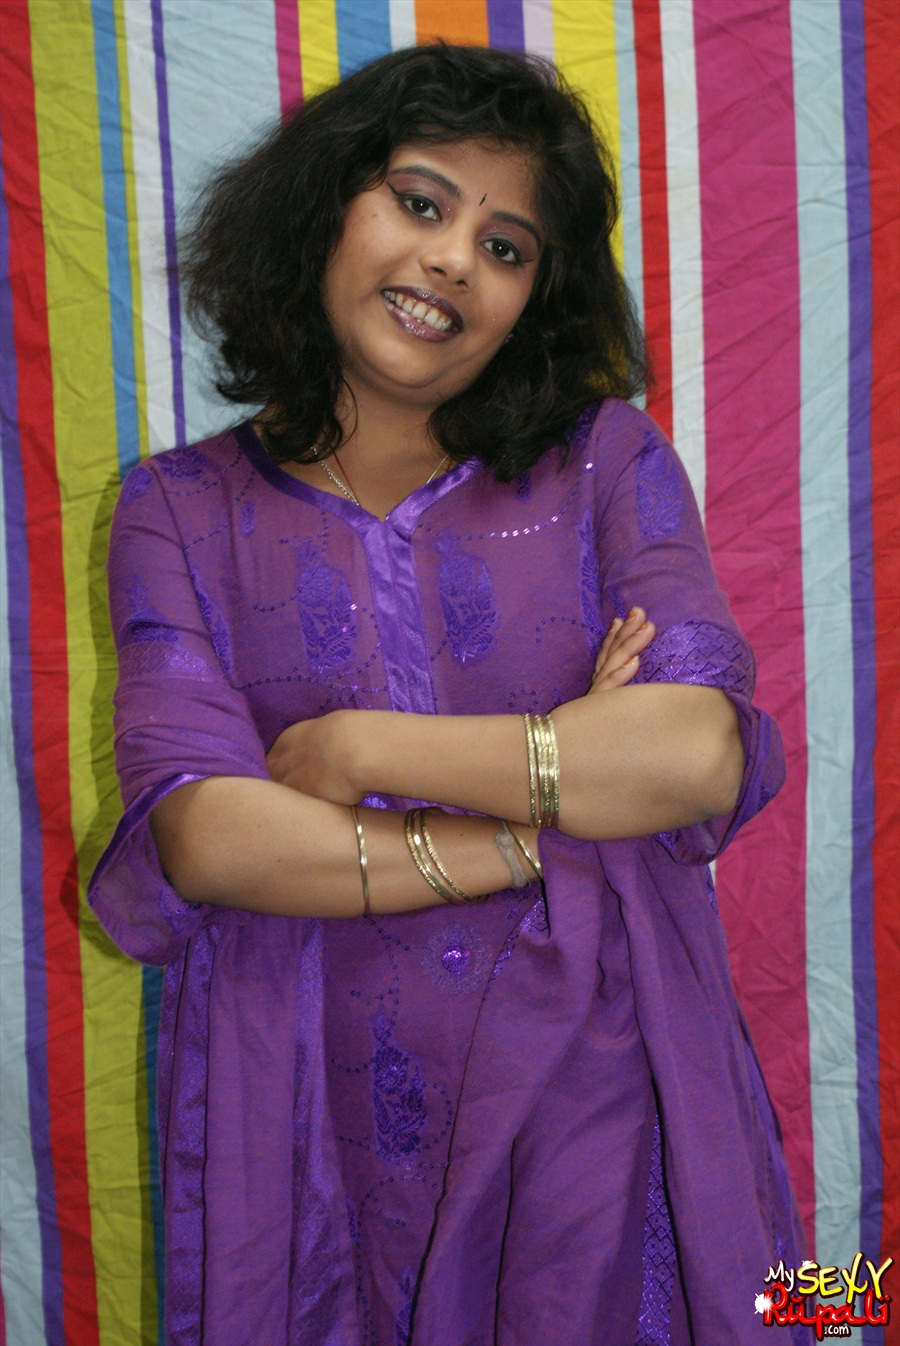 Iab picture gallery 24. Big boobs rupali in purple Indian shalwar suit